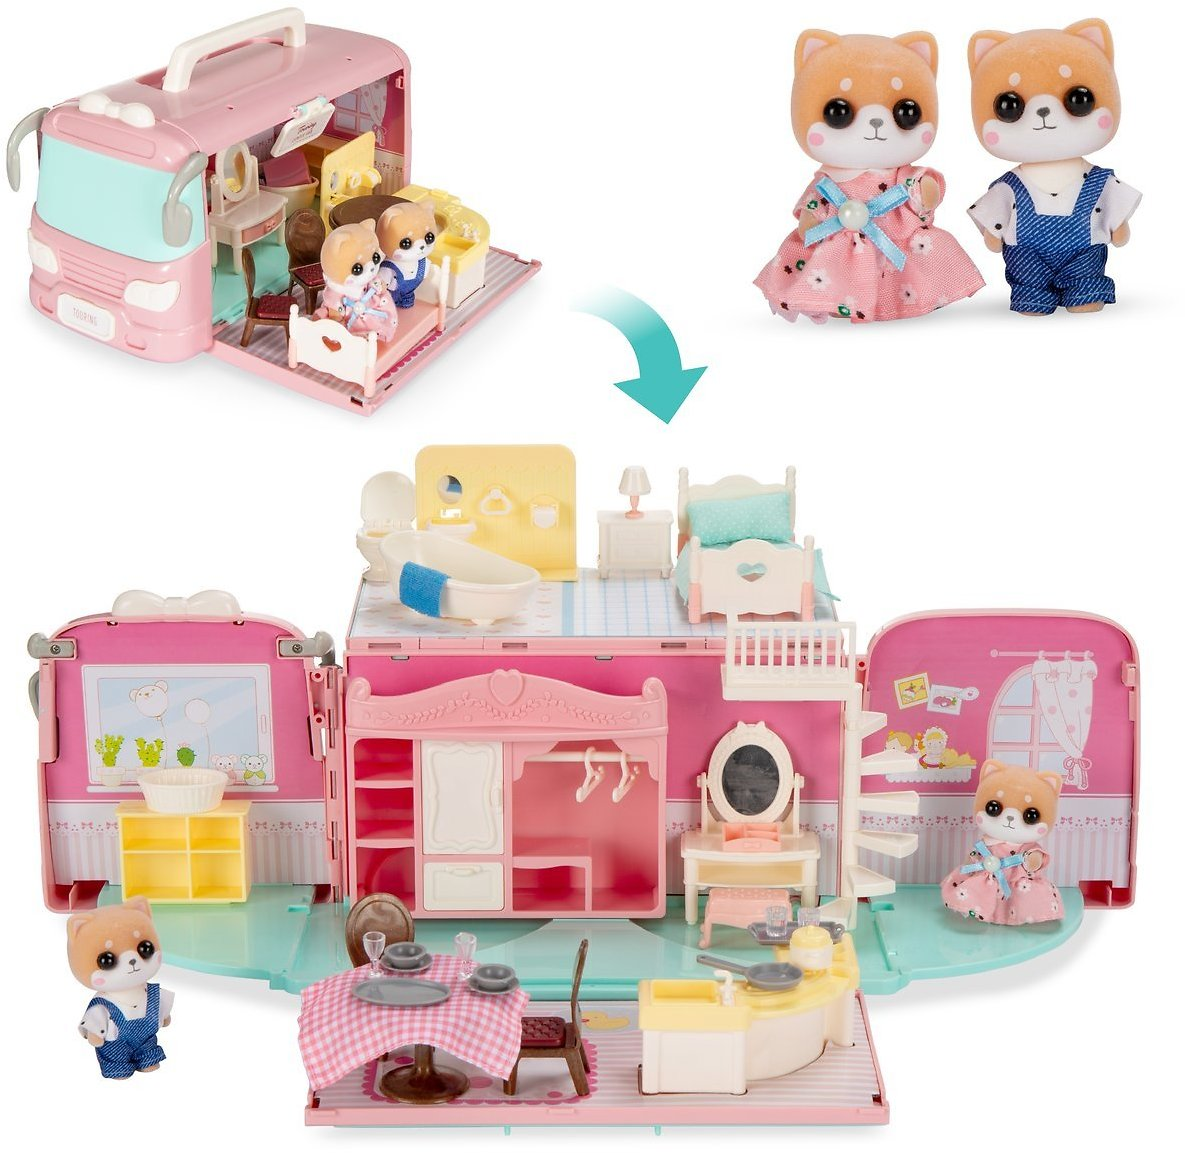 Tiny Critters Portable Full-Size Camper Van Playset Pretend Play Dollhouse